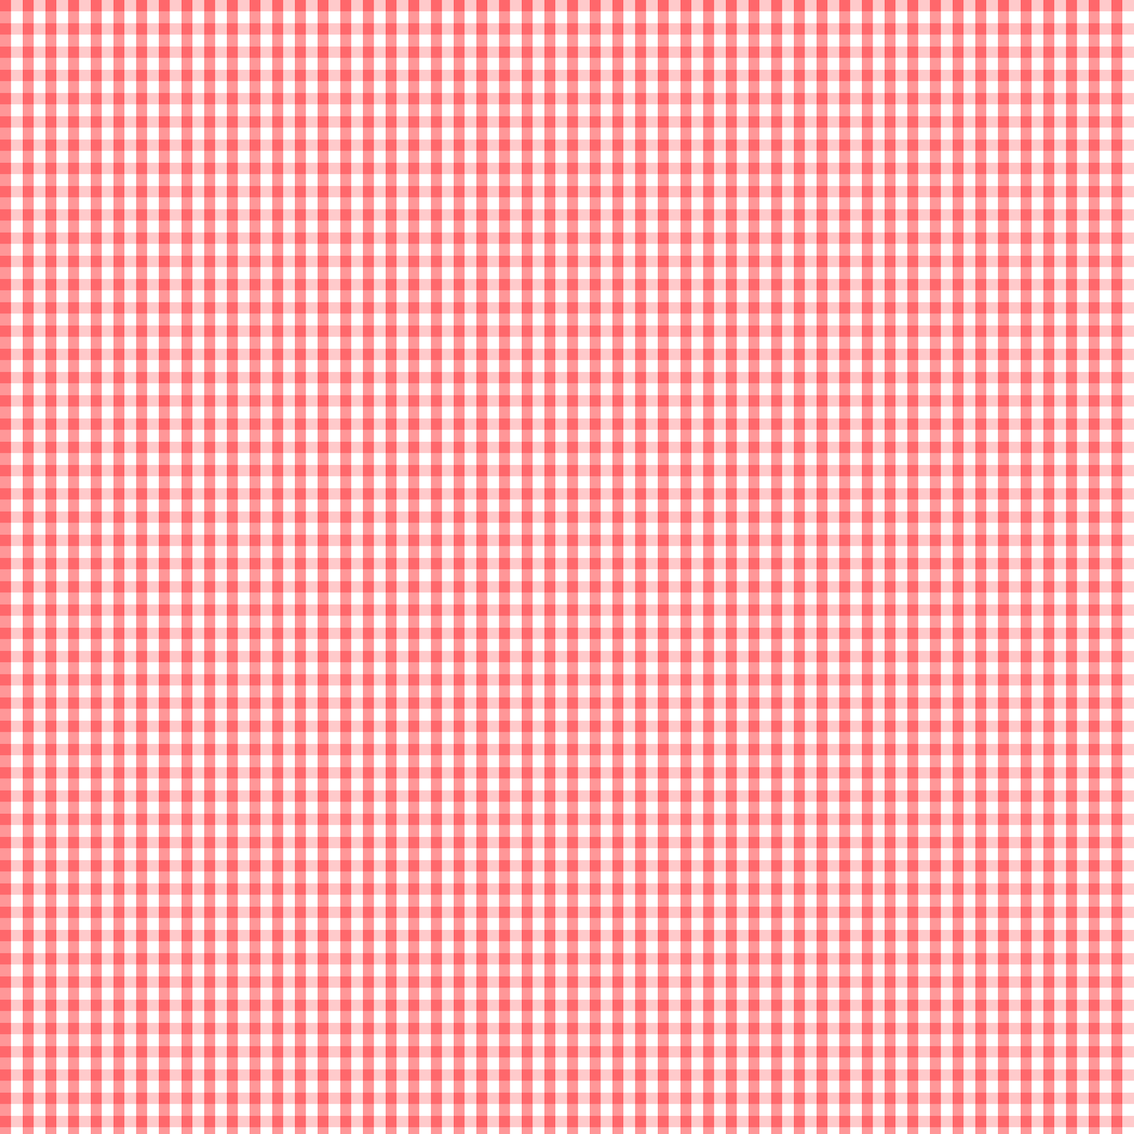 Red White Gingham Wallpaper Wallpapersafari